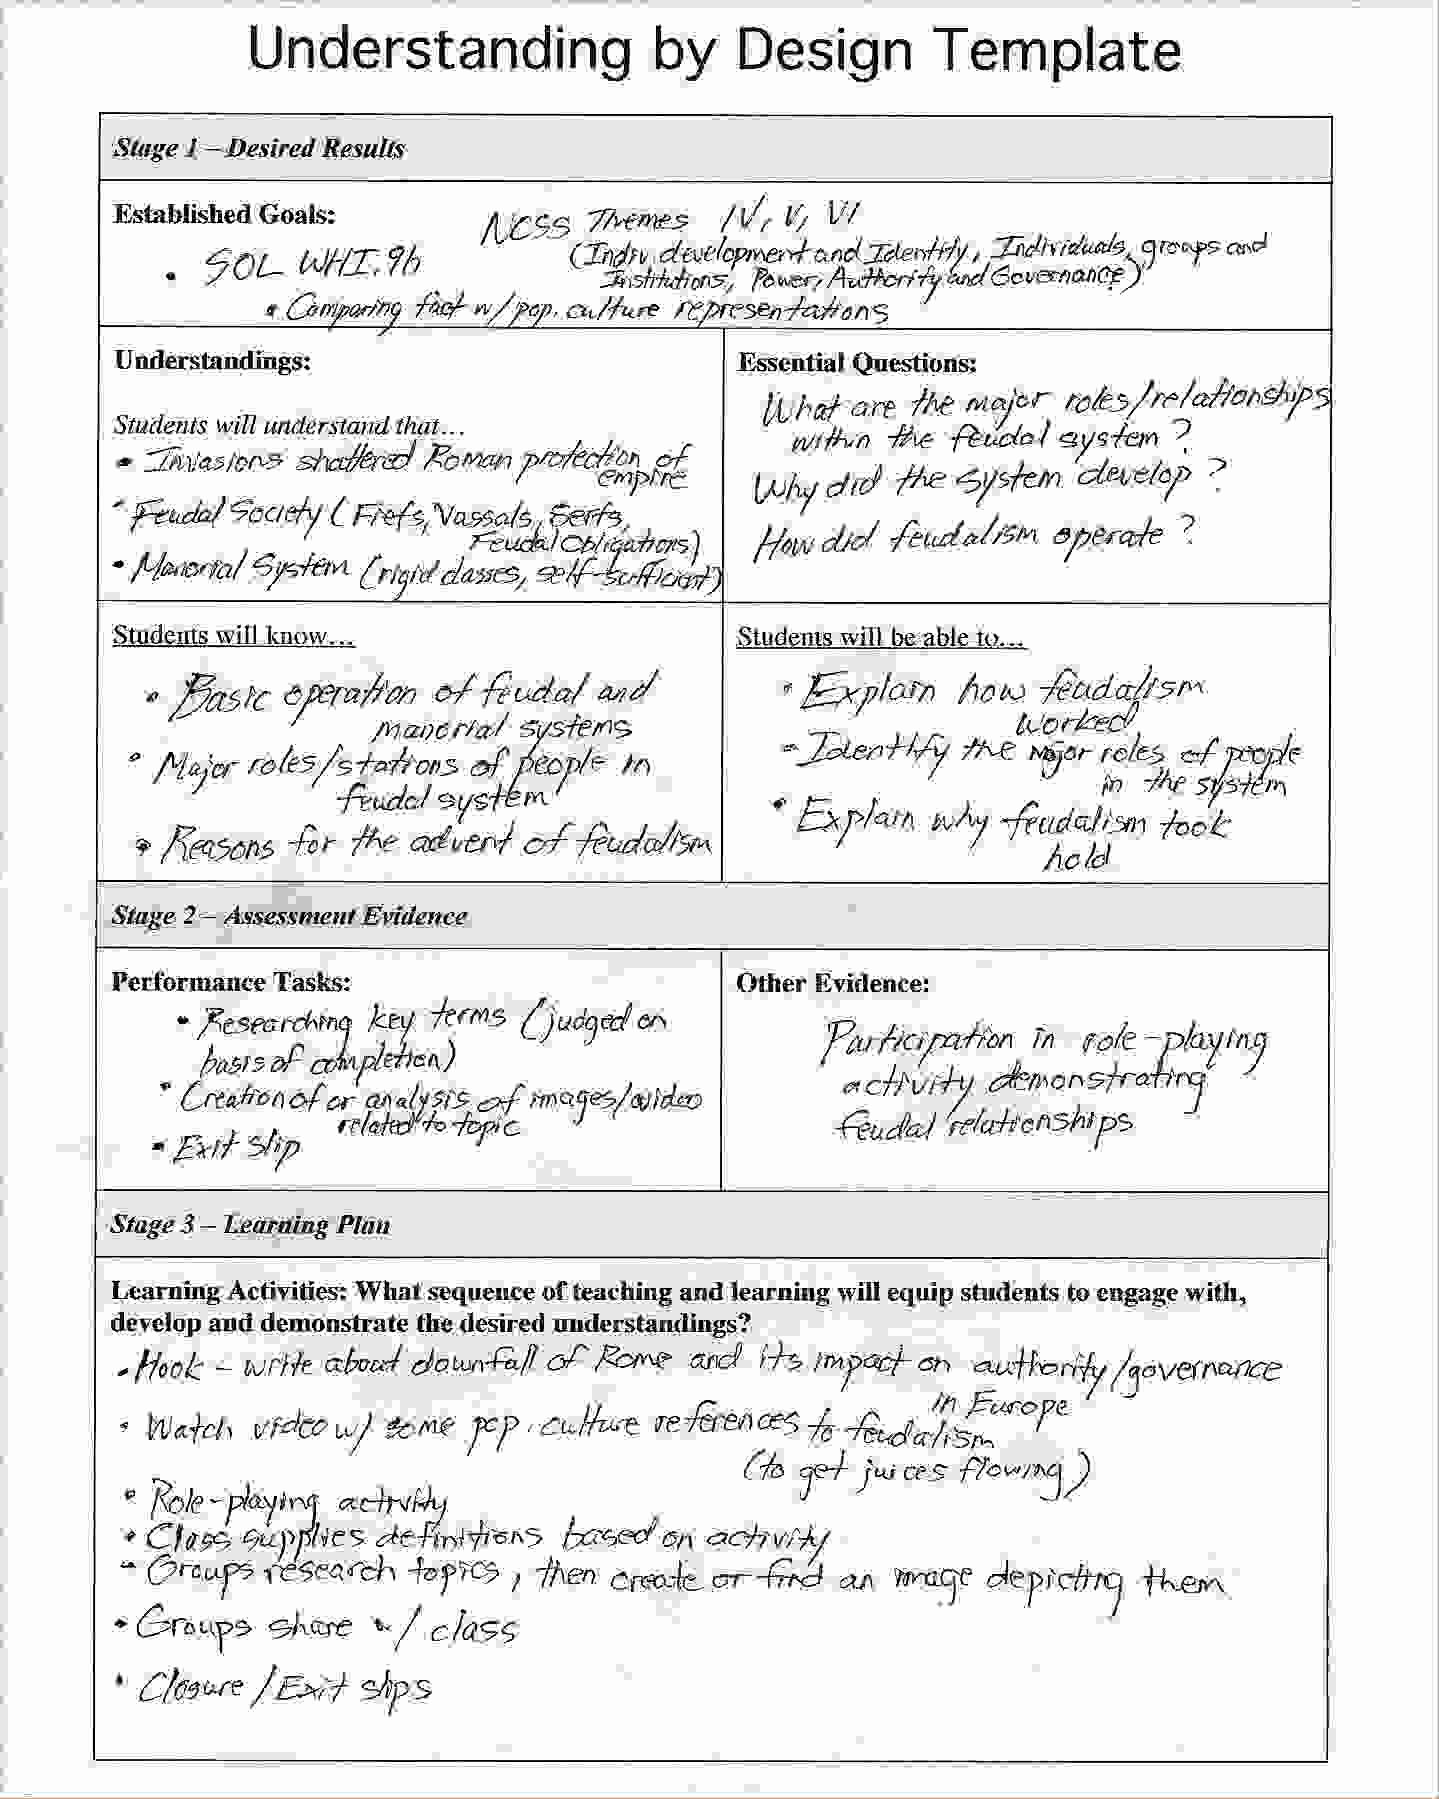 Ubd Lesson Plan Template Elegant Understanding by Design Template